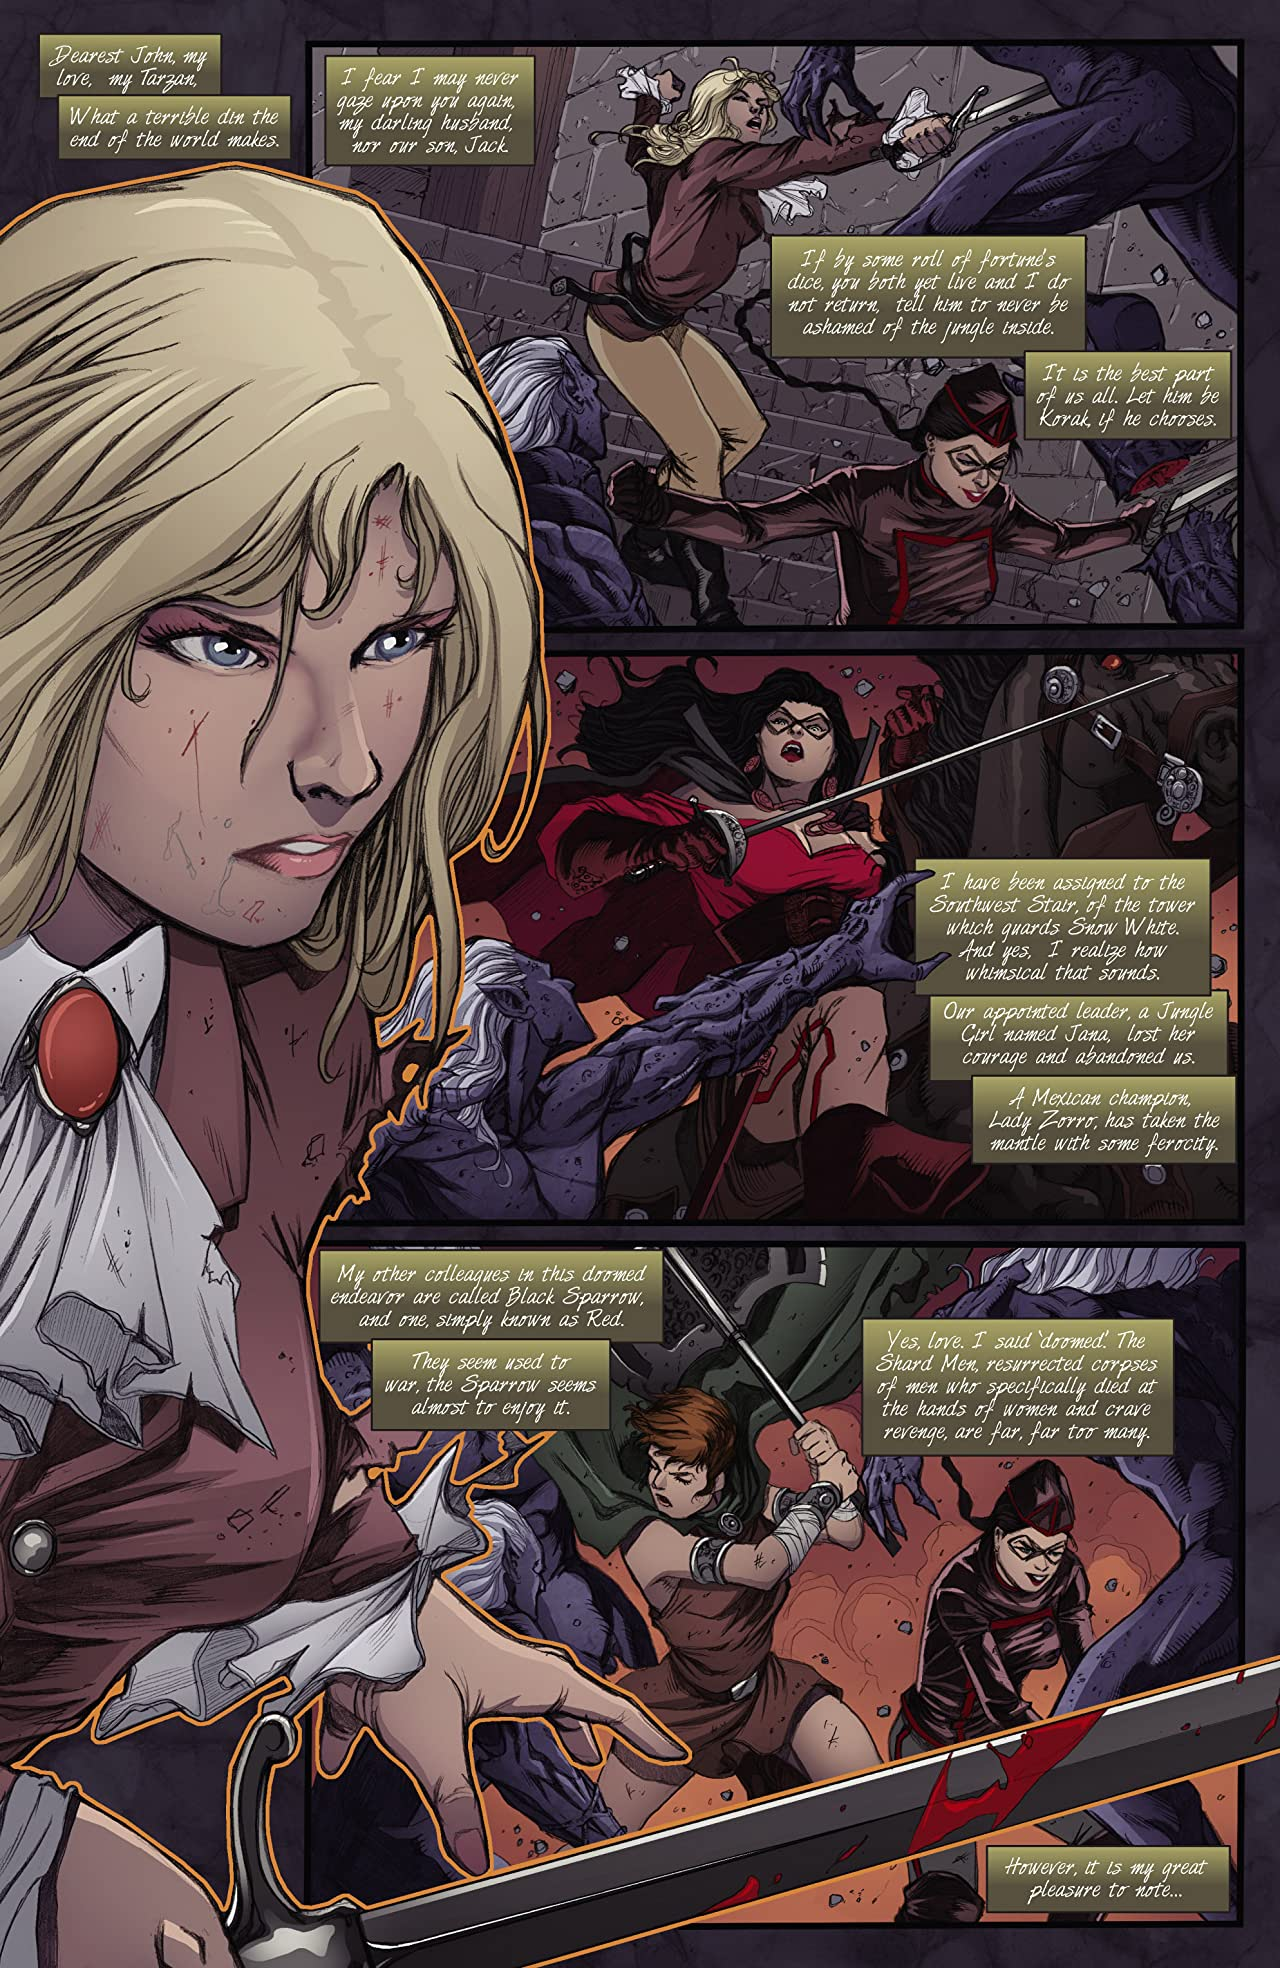 Swords of Sorrow #6 (of 6): Digital Exclusive Edition